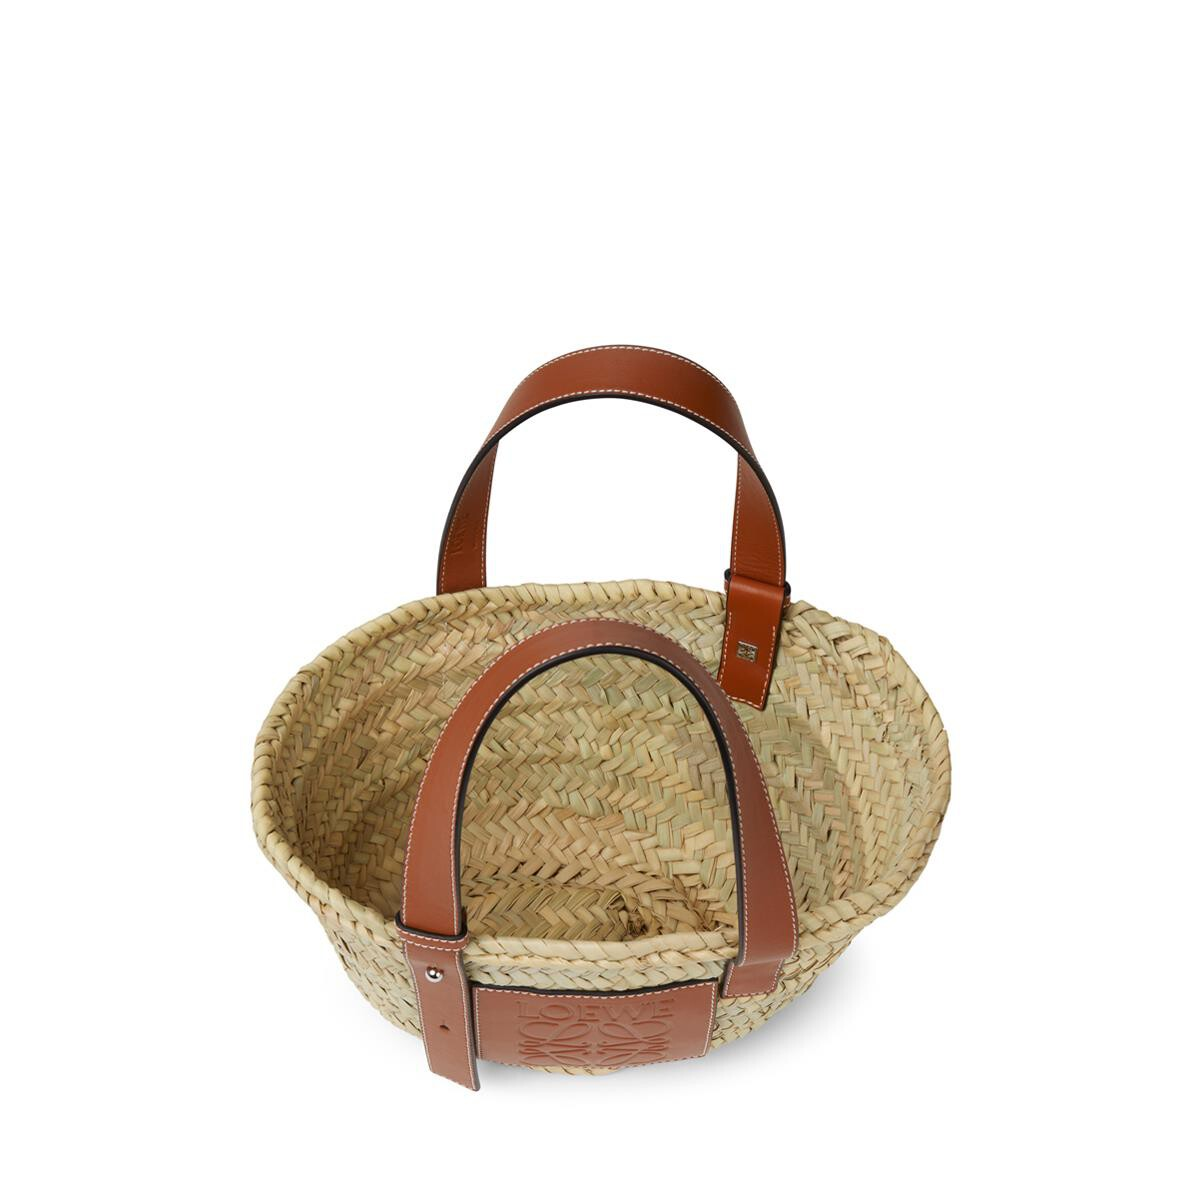 LOEWE Small Basket Bag In Palm Leaf And Calfskin Natural/Tan front